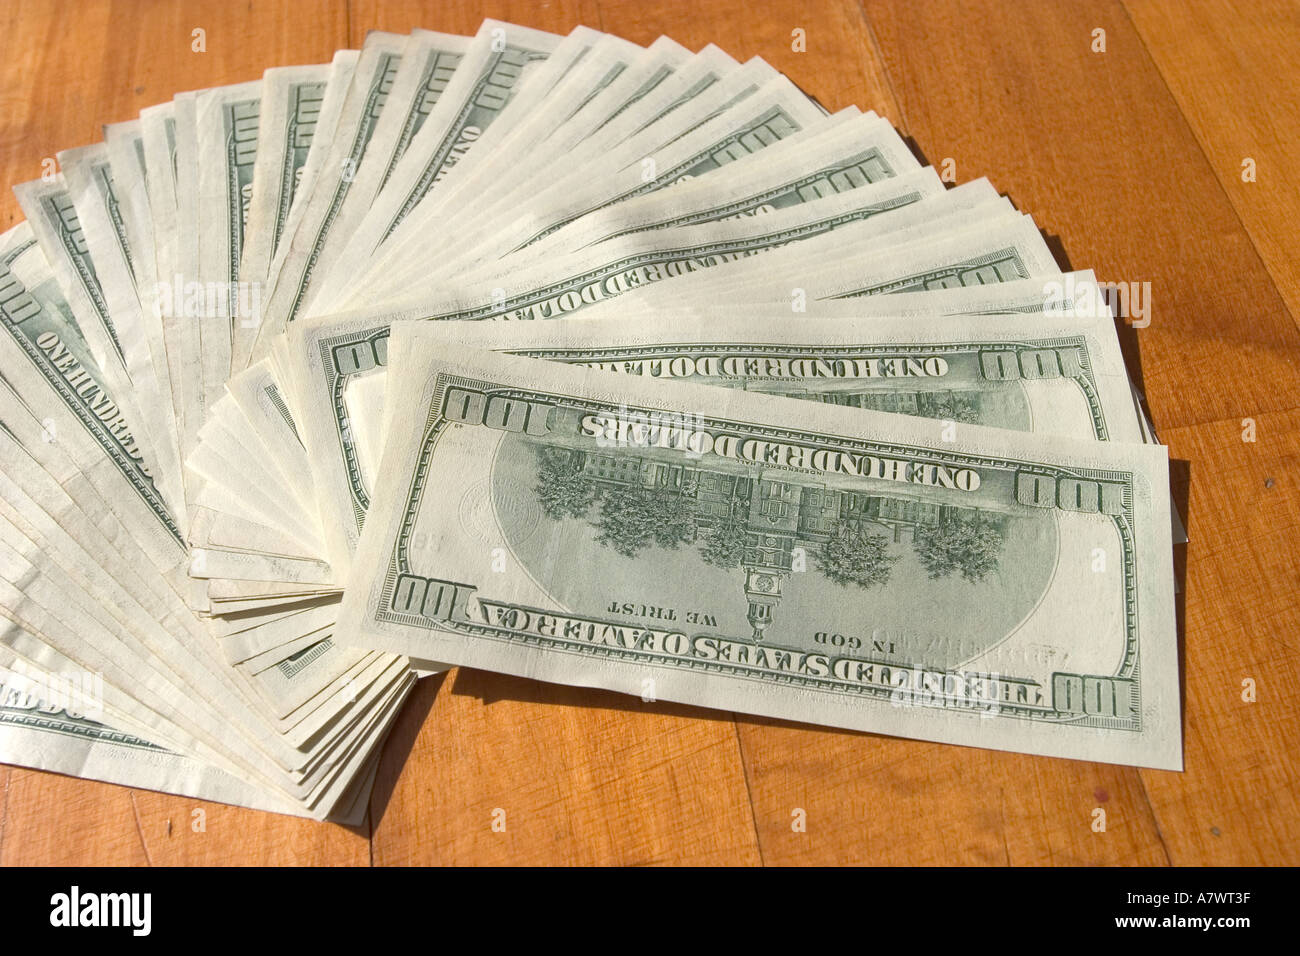 Aligned 5000 Dollars In Cash In One Hundred American Currency Dollars